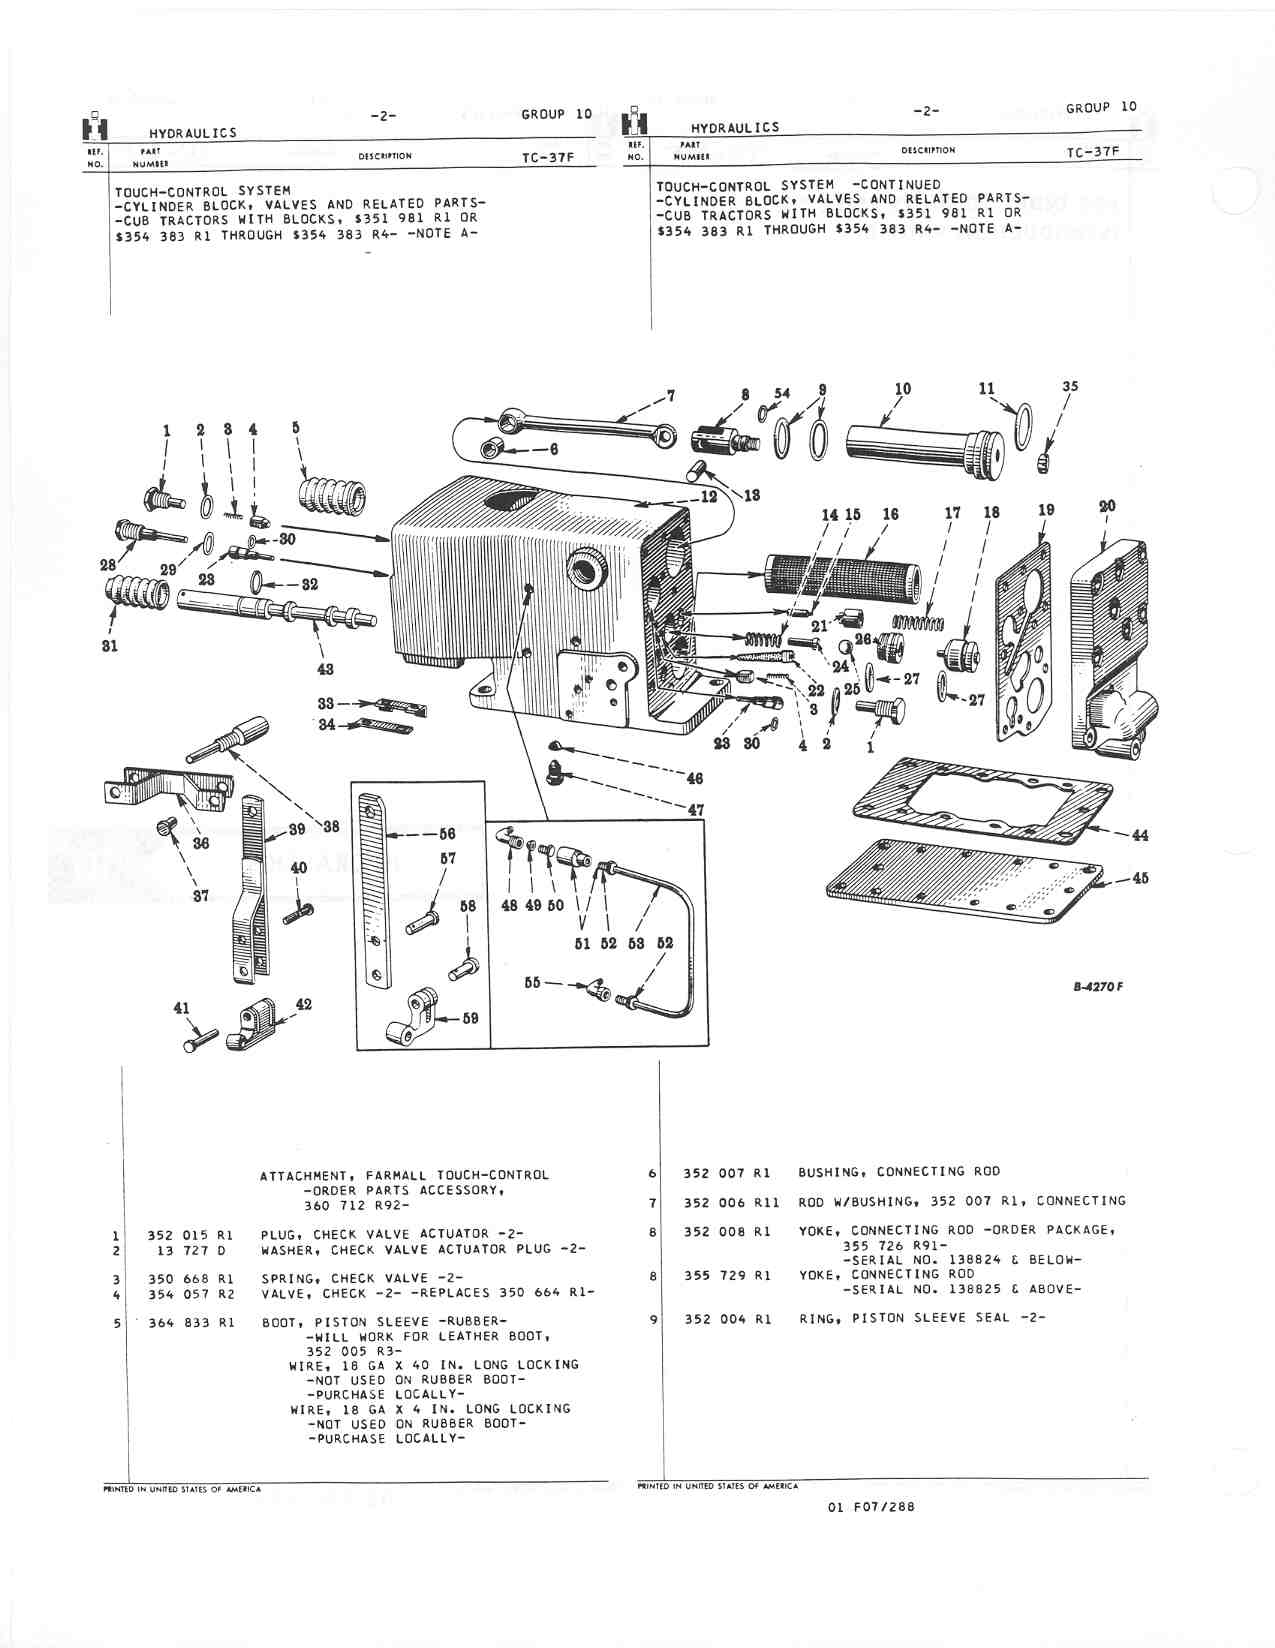 farmall super a hydraulic system diagram - wiring diagram farmall super h parts diagram farmall h parts diagram